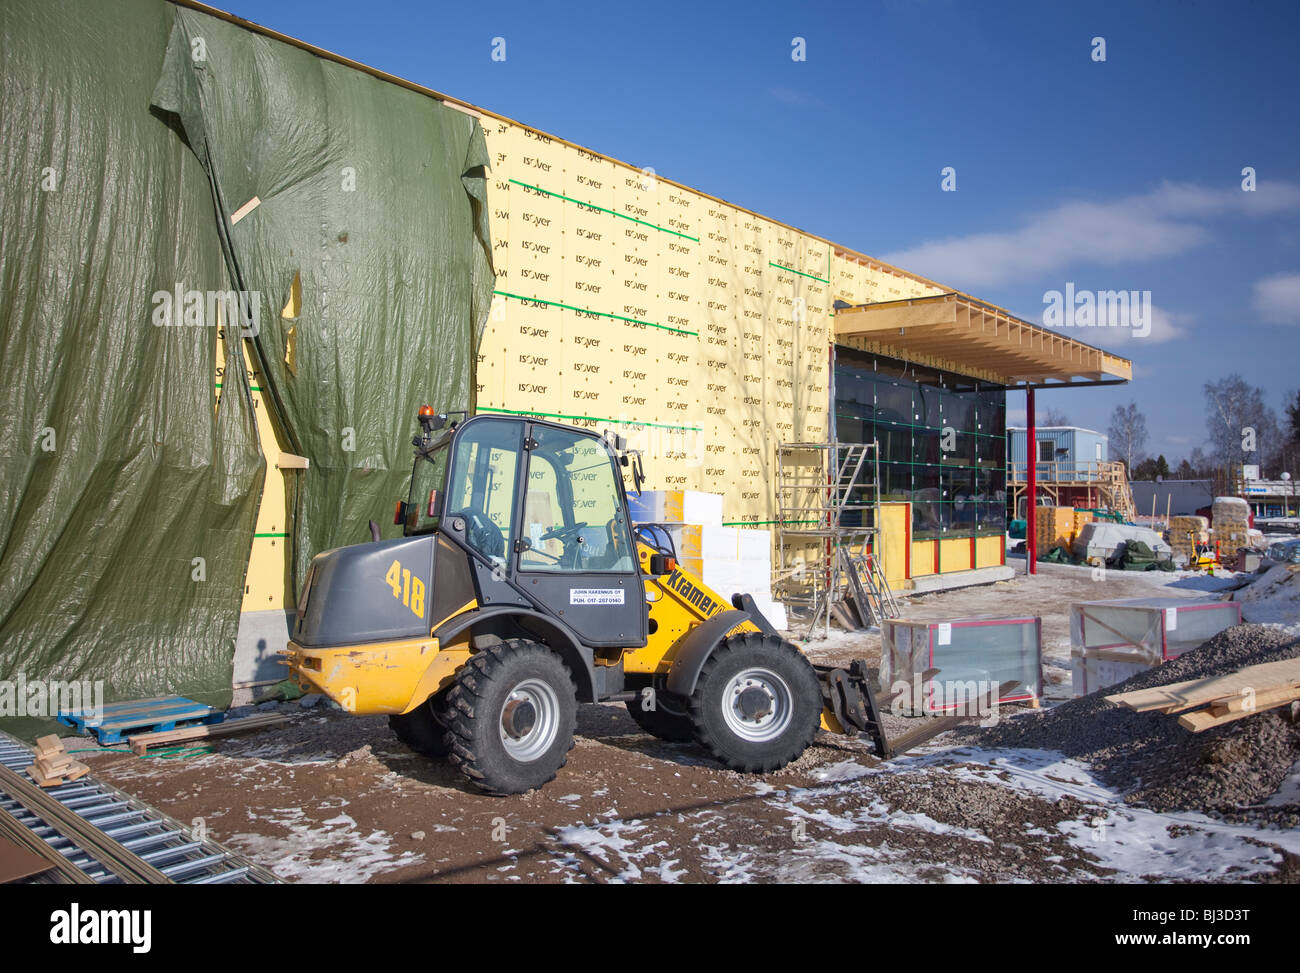 Construction site where the outer insulation sheathing has been installed to the wall , Finland - Stock Image